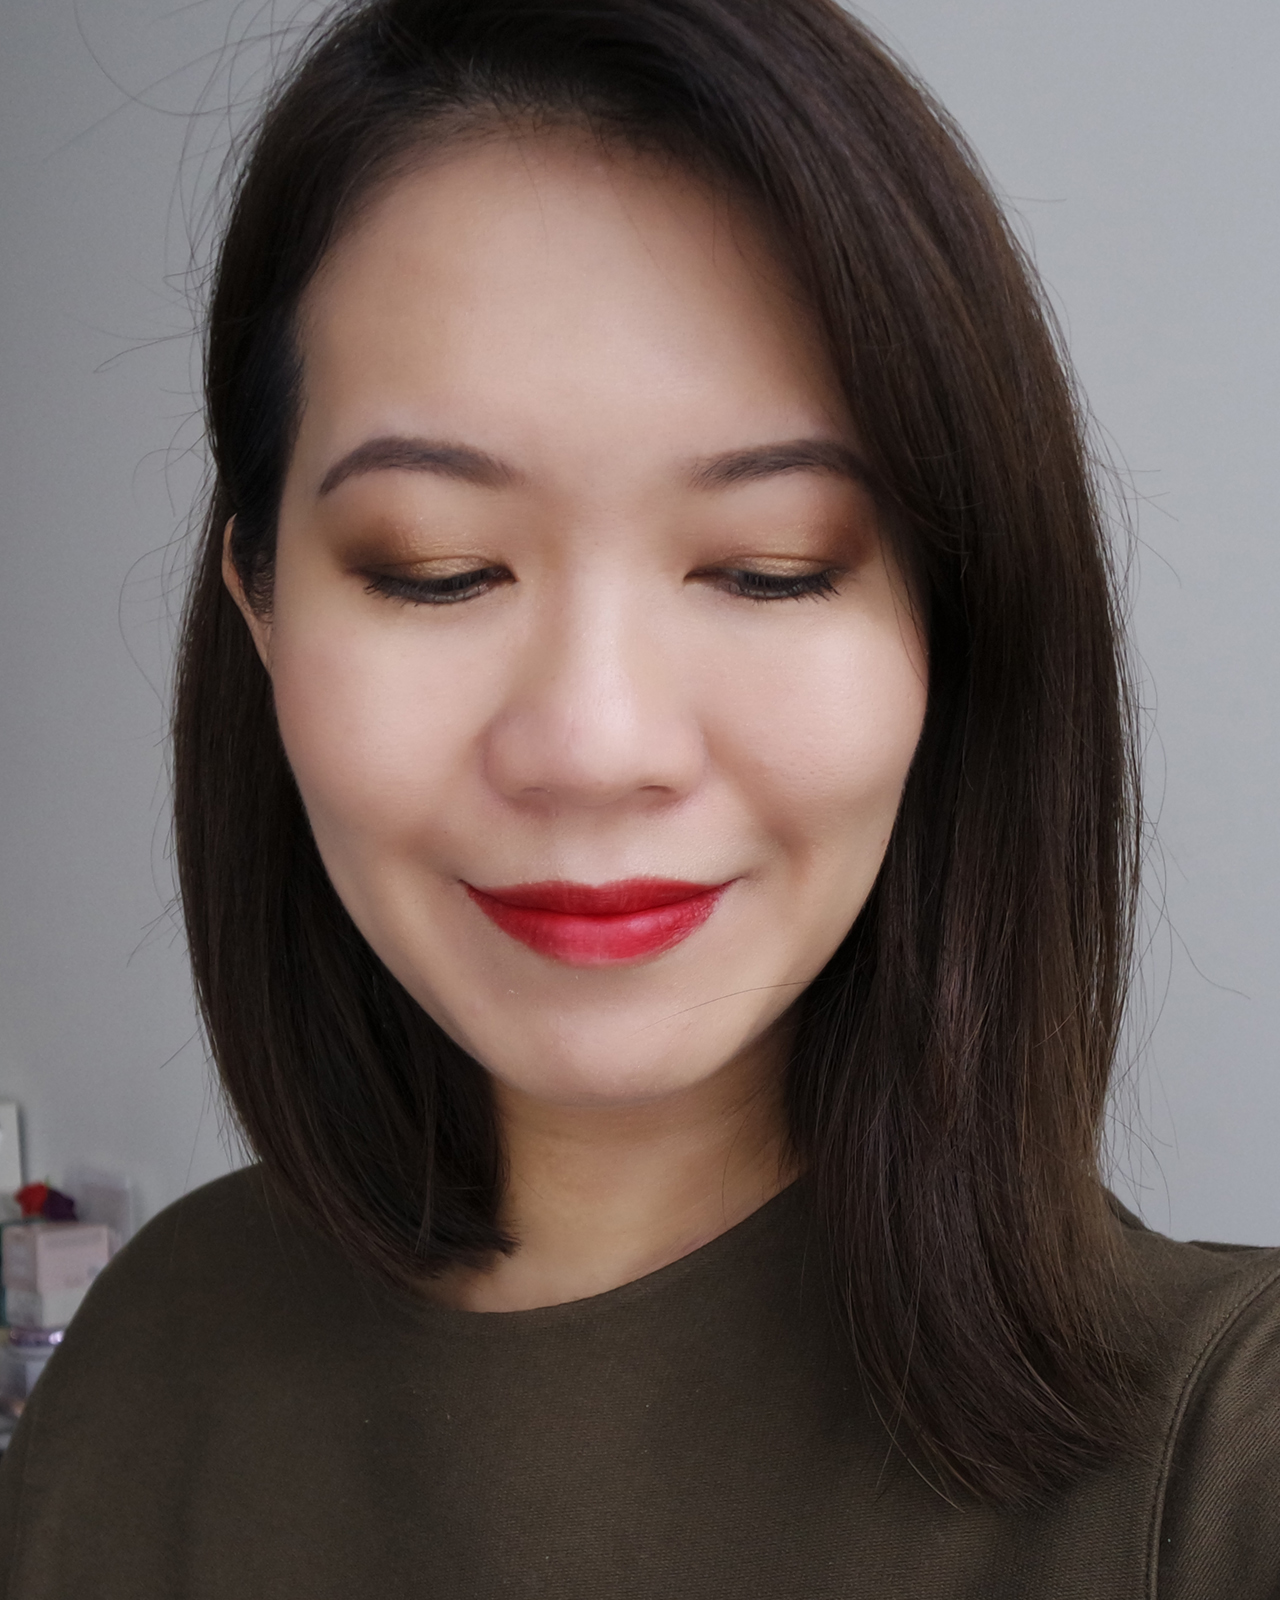 Natasha Denona Mini Star makeup look